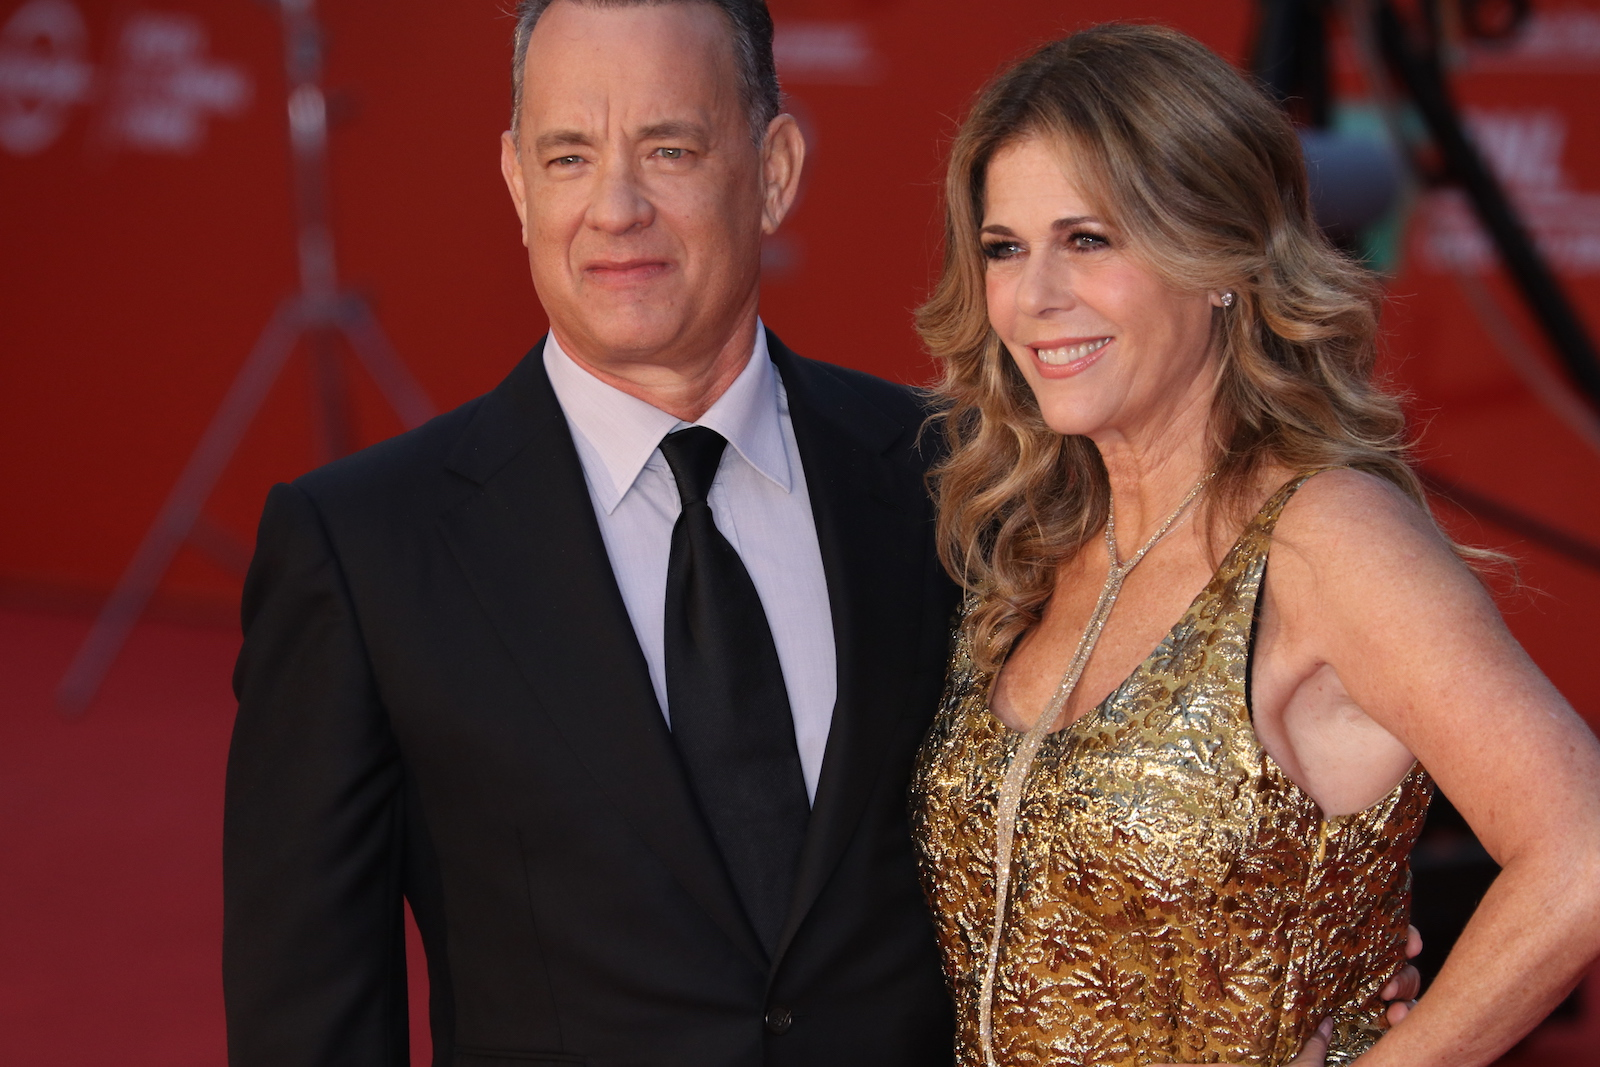 Roma 2016: Tom Hanks e sua moglie Rita Wilson sul red carpet